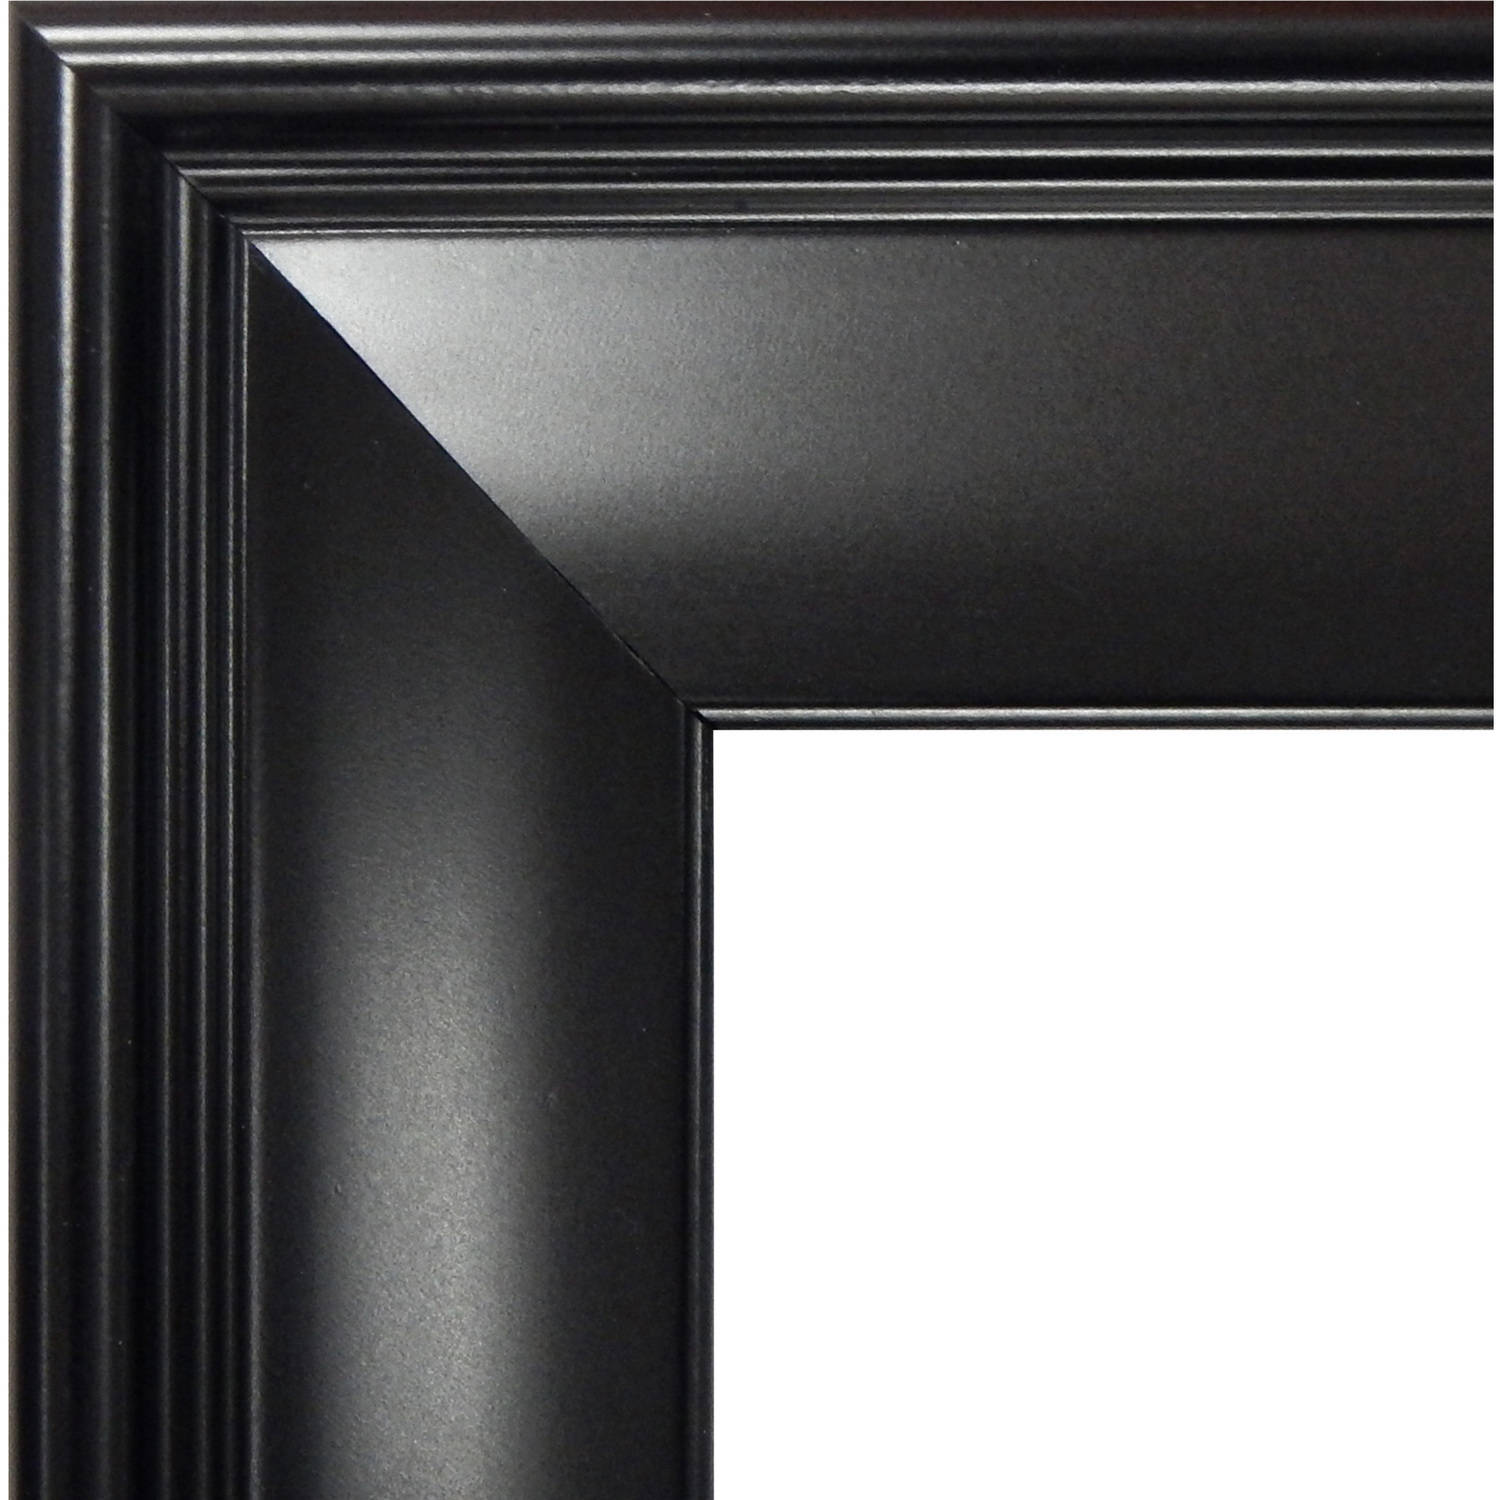 Mainstays 18x24 Casual Poster and Picture Frame, Black - Walmart.com